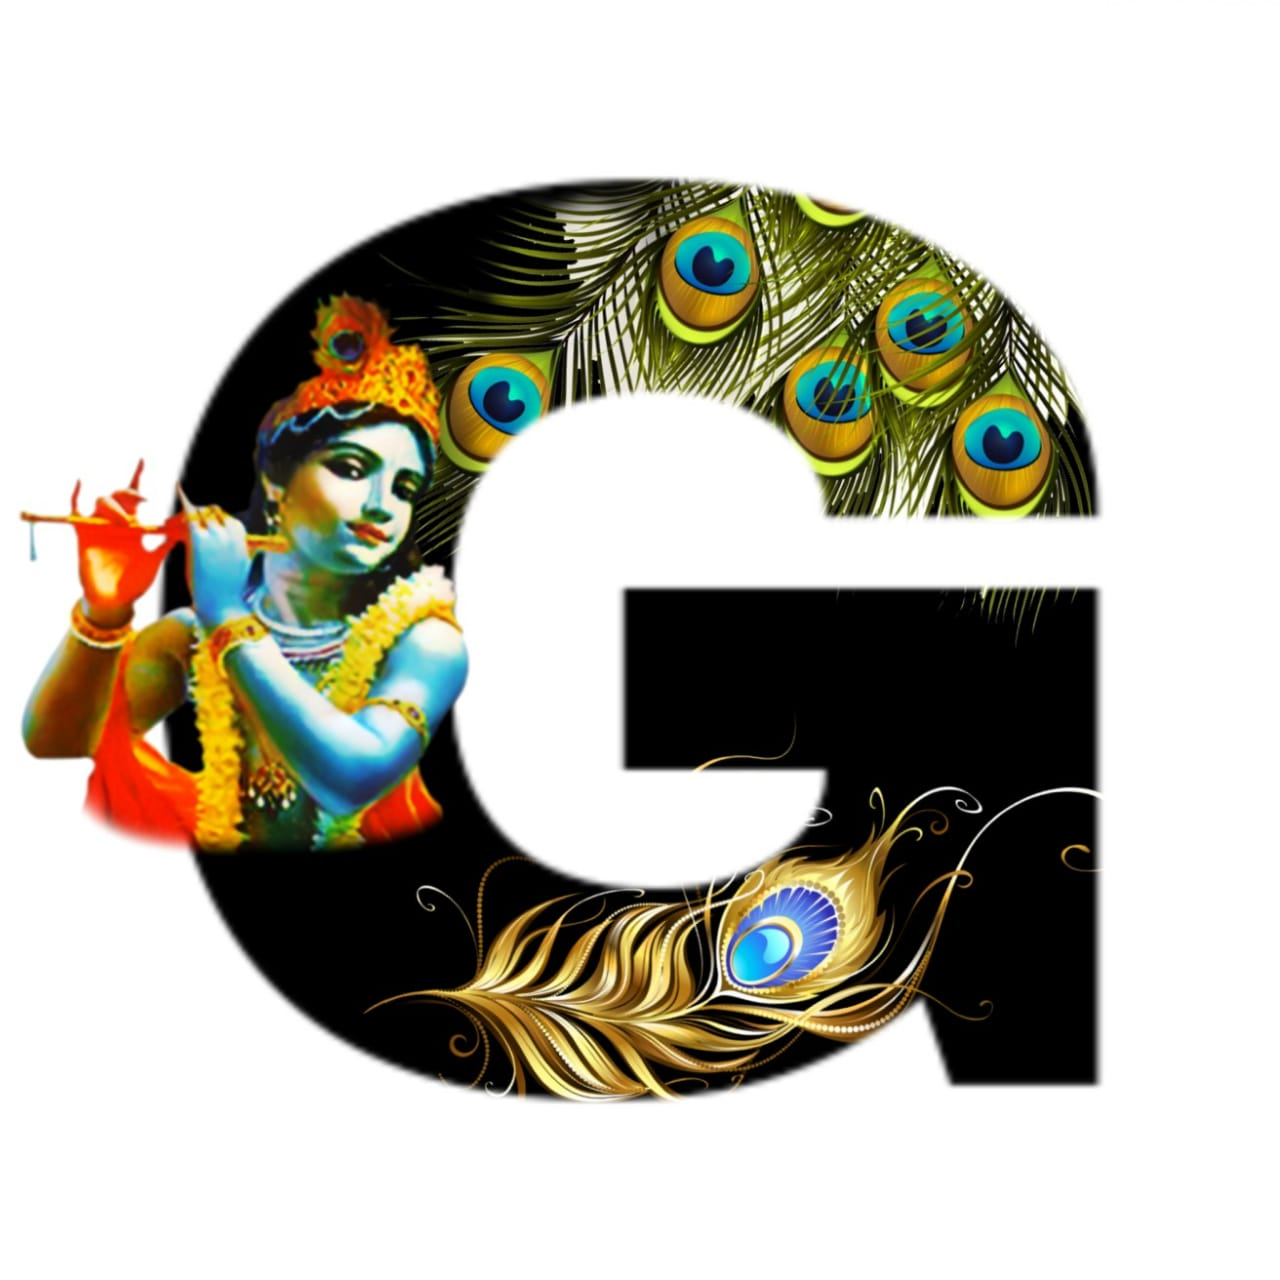 shree krishna alphabet g images